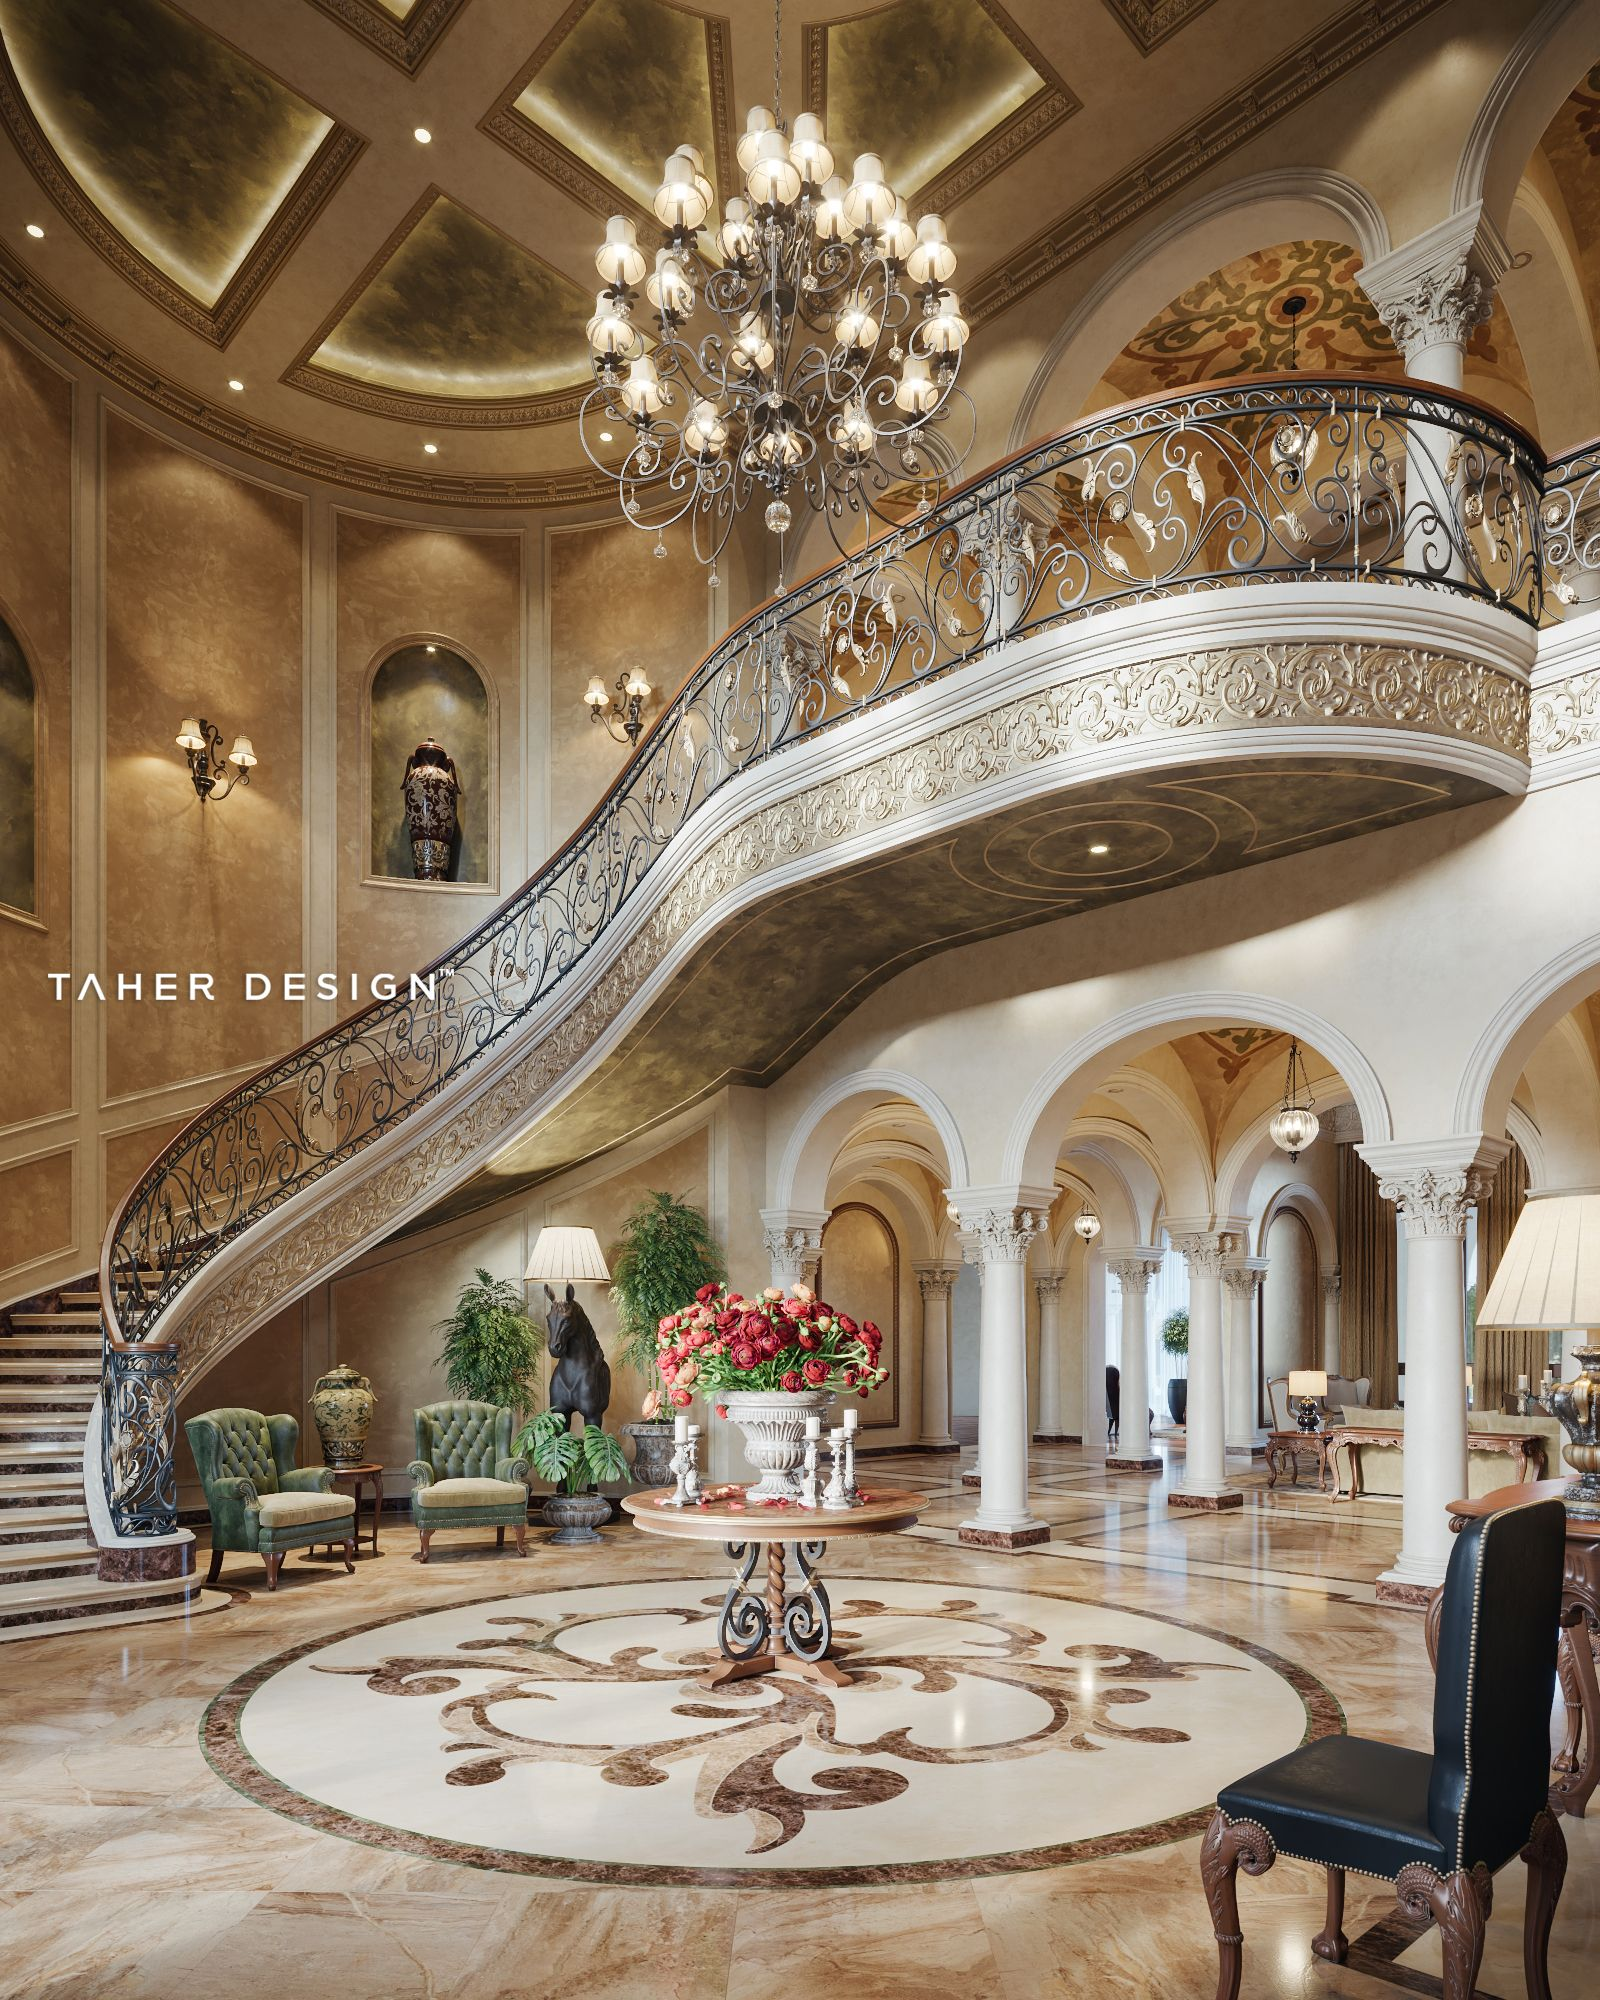 Luxury Home Interior Design Luxury Interior Designer: Grand Foyer Design For Luxury Mansion Located In (Dubai